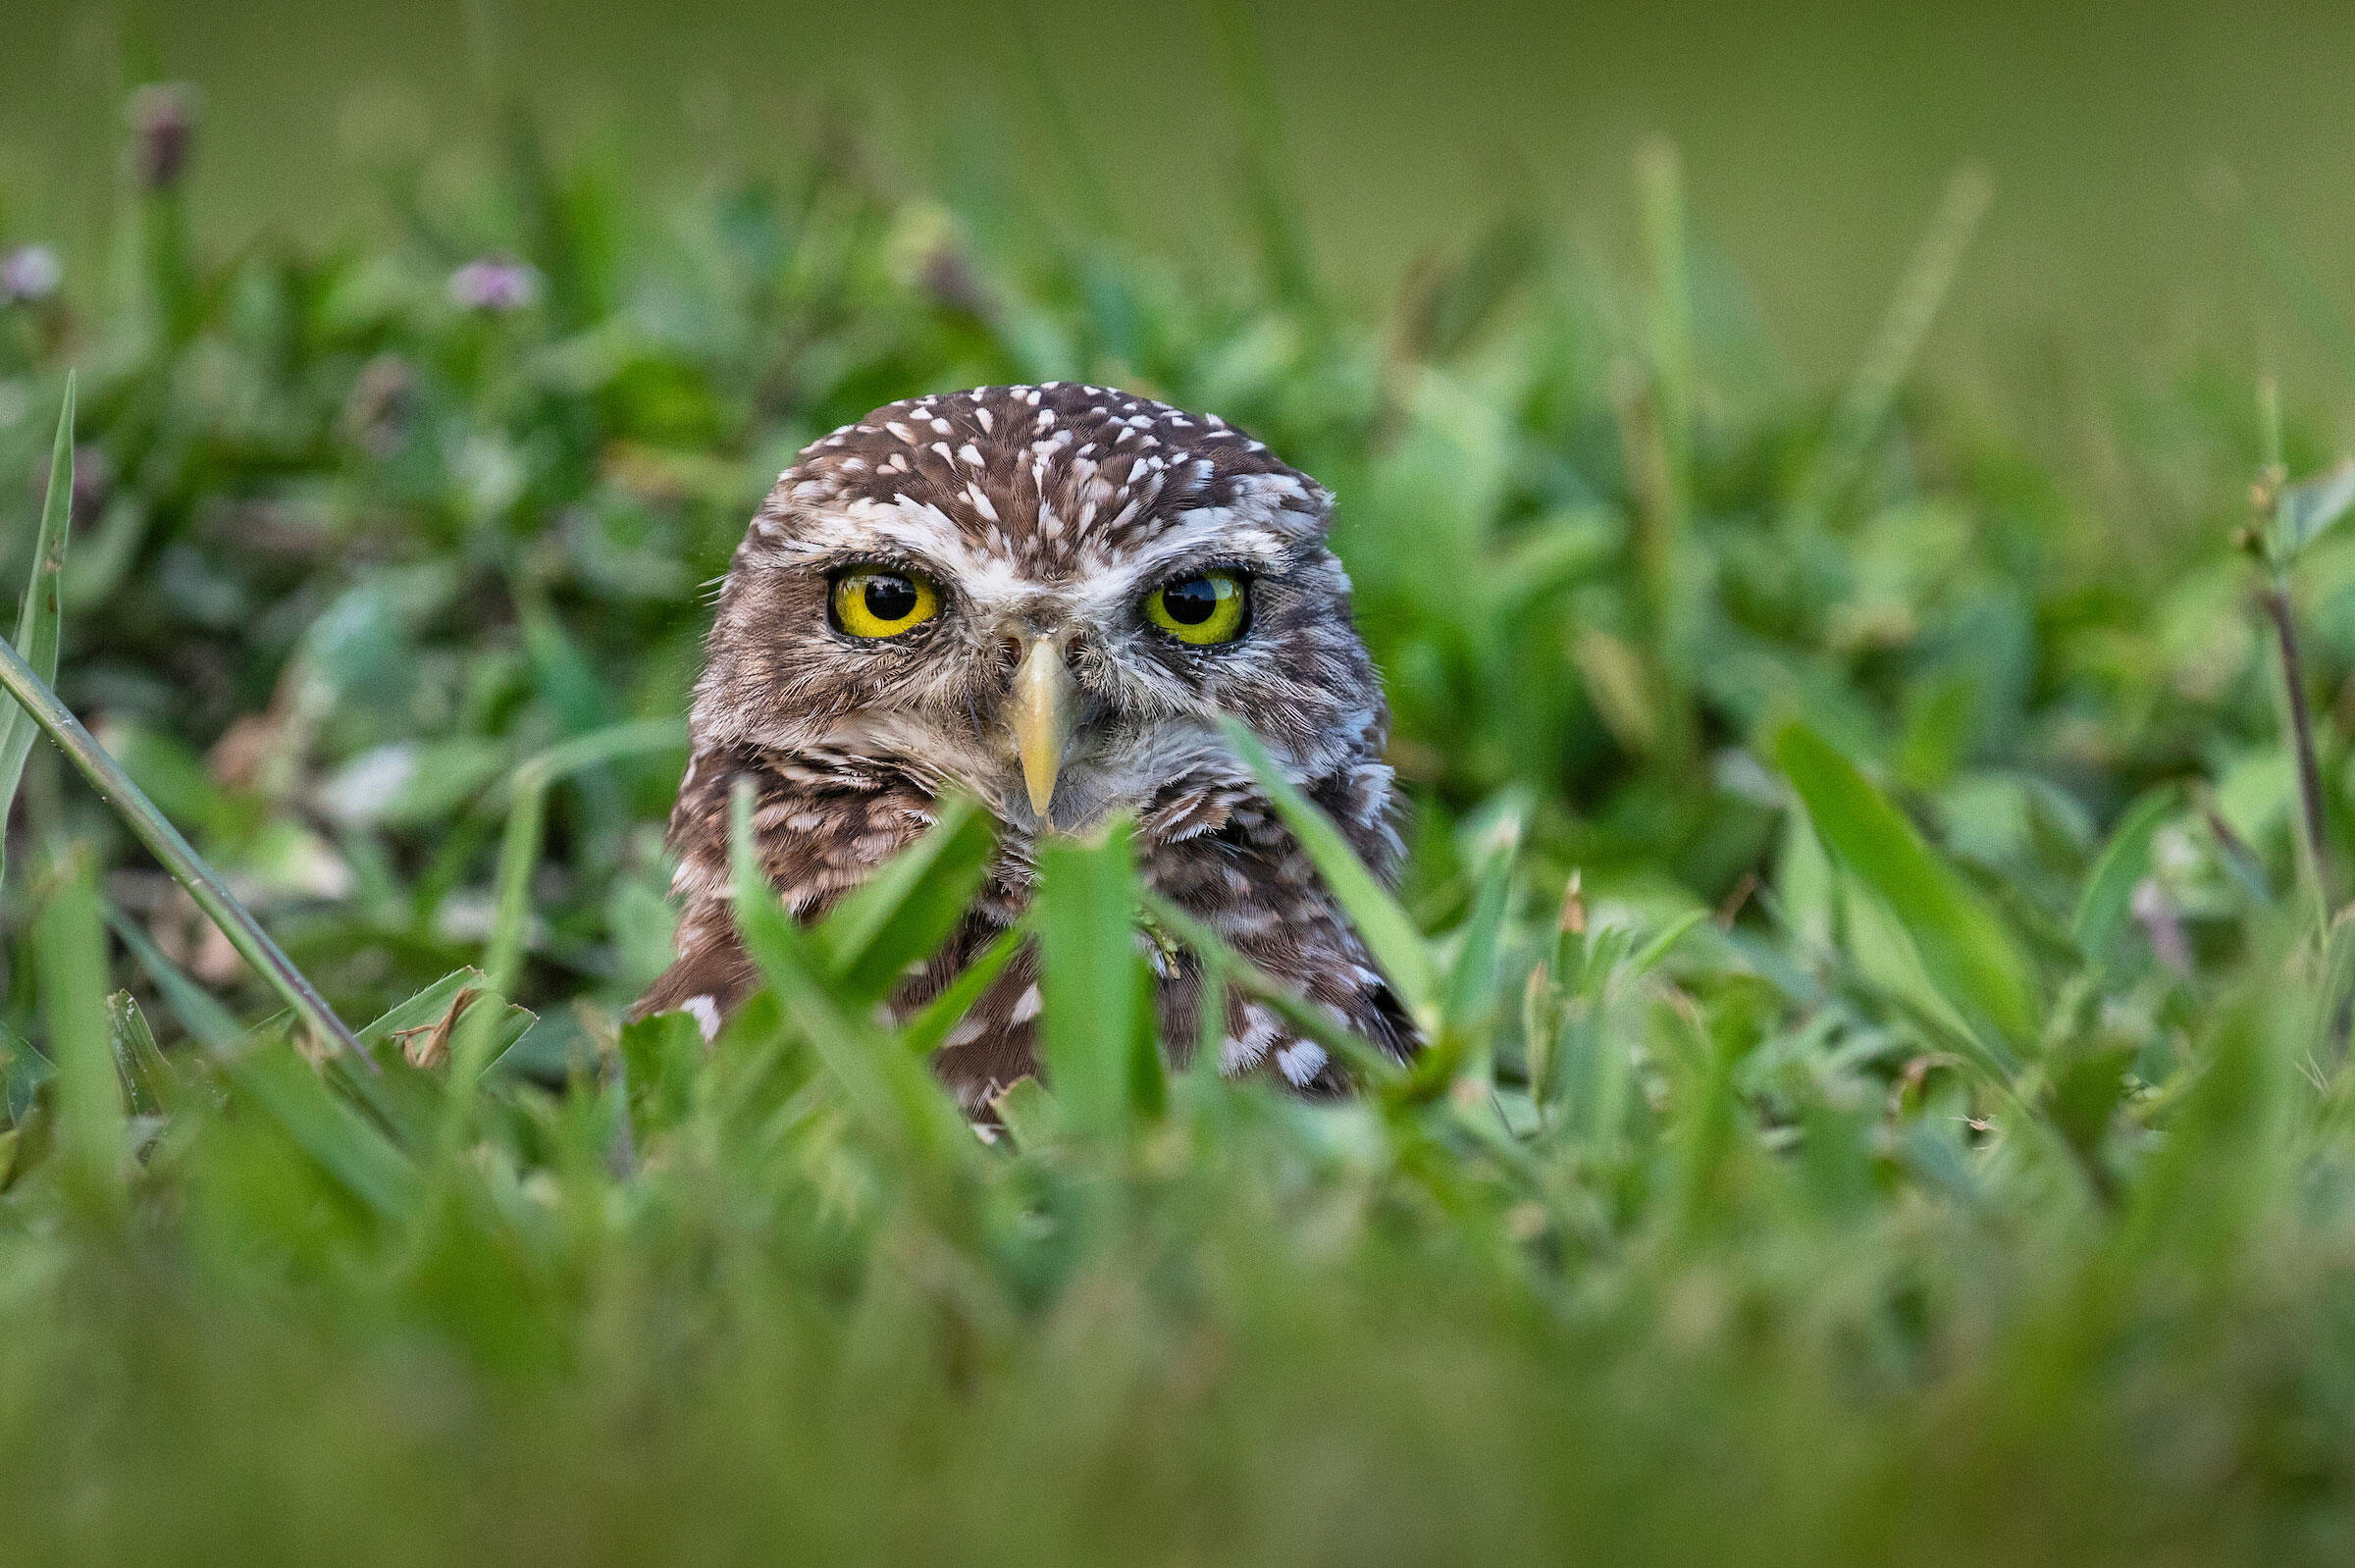 Cape Coral is home to one of the largest populations of Burrowing Owls. Nile monitors, invasive lizards that also abound in the area, are known to eat the birds—but just how often is still a mystery. Karine Aigner